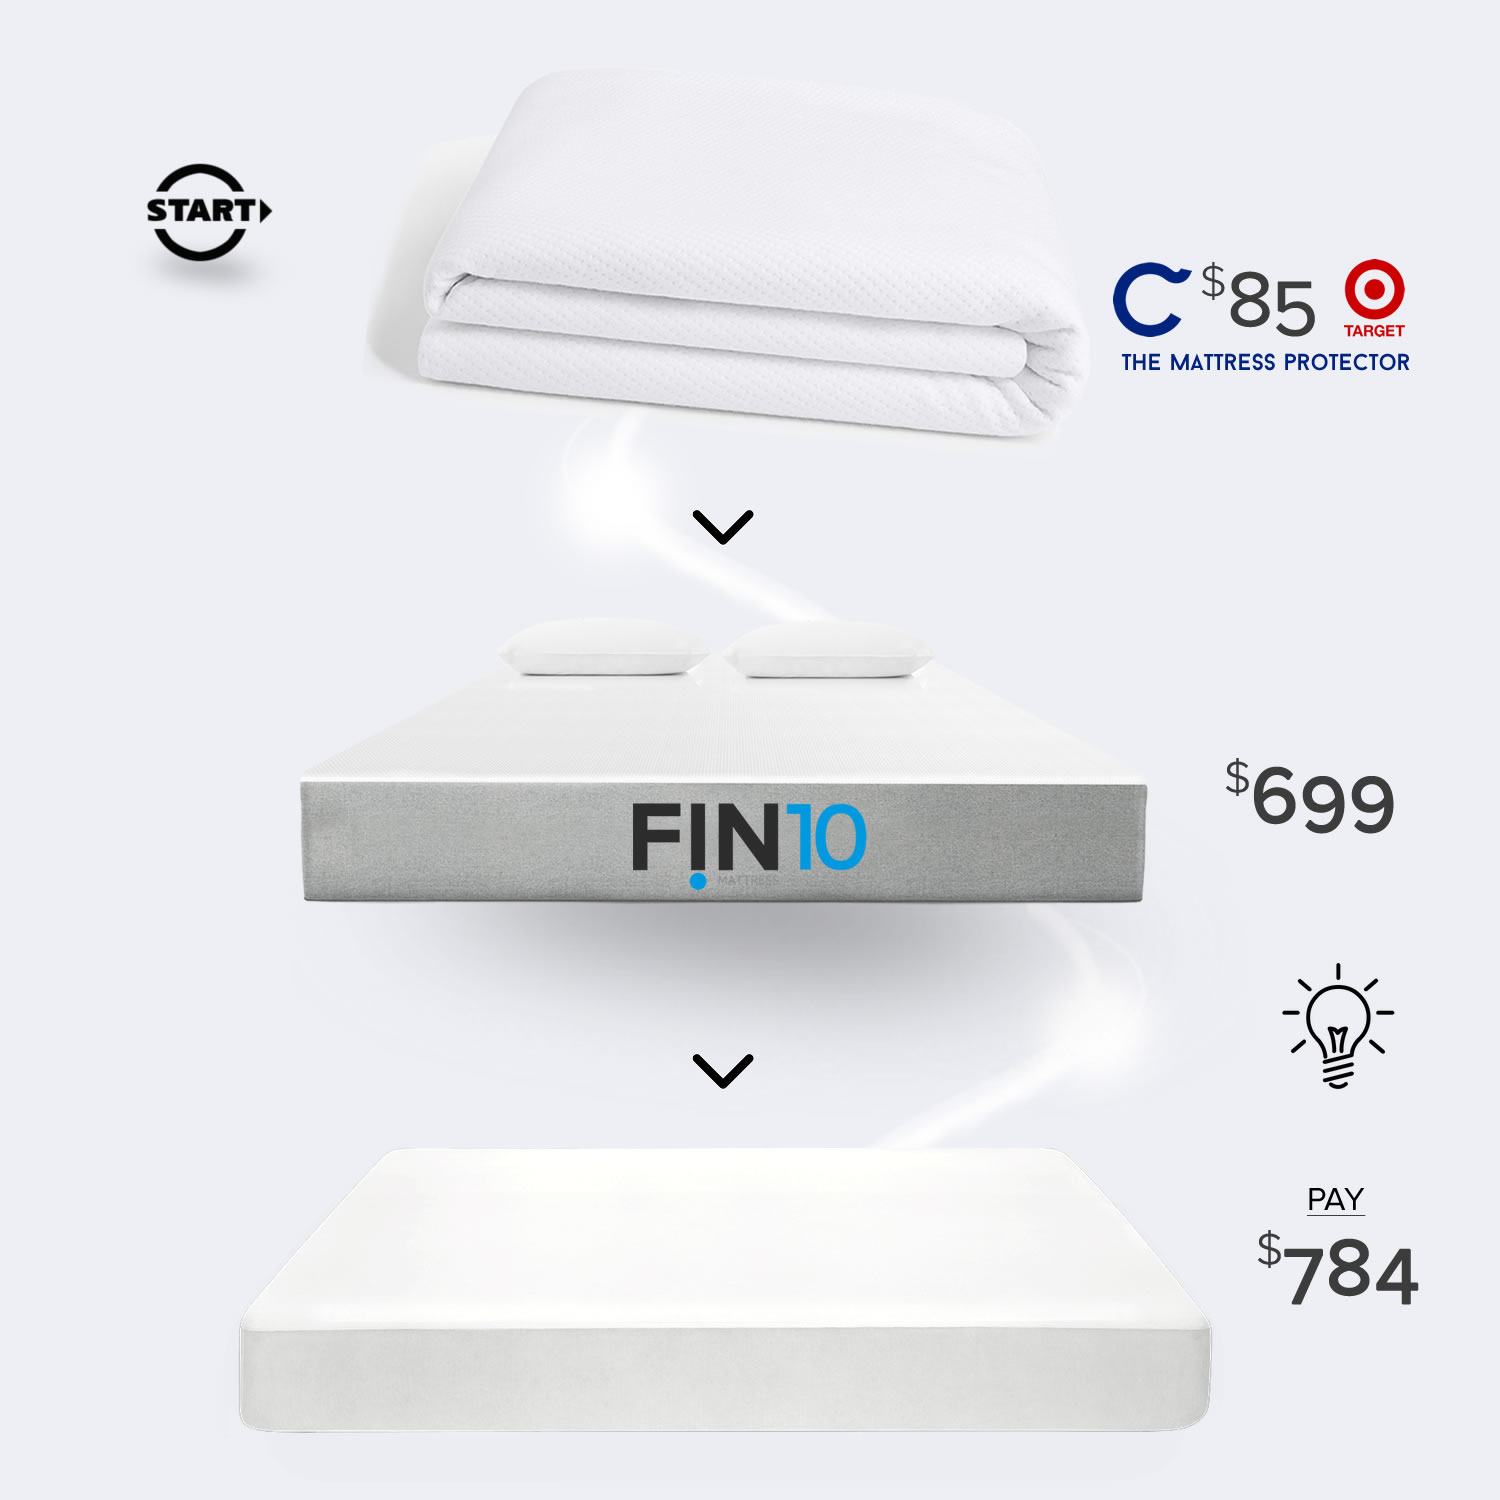 THE CASPER HACK IS TO COMBINE THE CASPER MATTRESS PROTECTOR WITH A SIMILAR MATTRESS SUCH AS OR THE  FIN10 MATTRESS  AND SAVE OVER $400